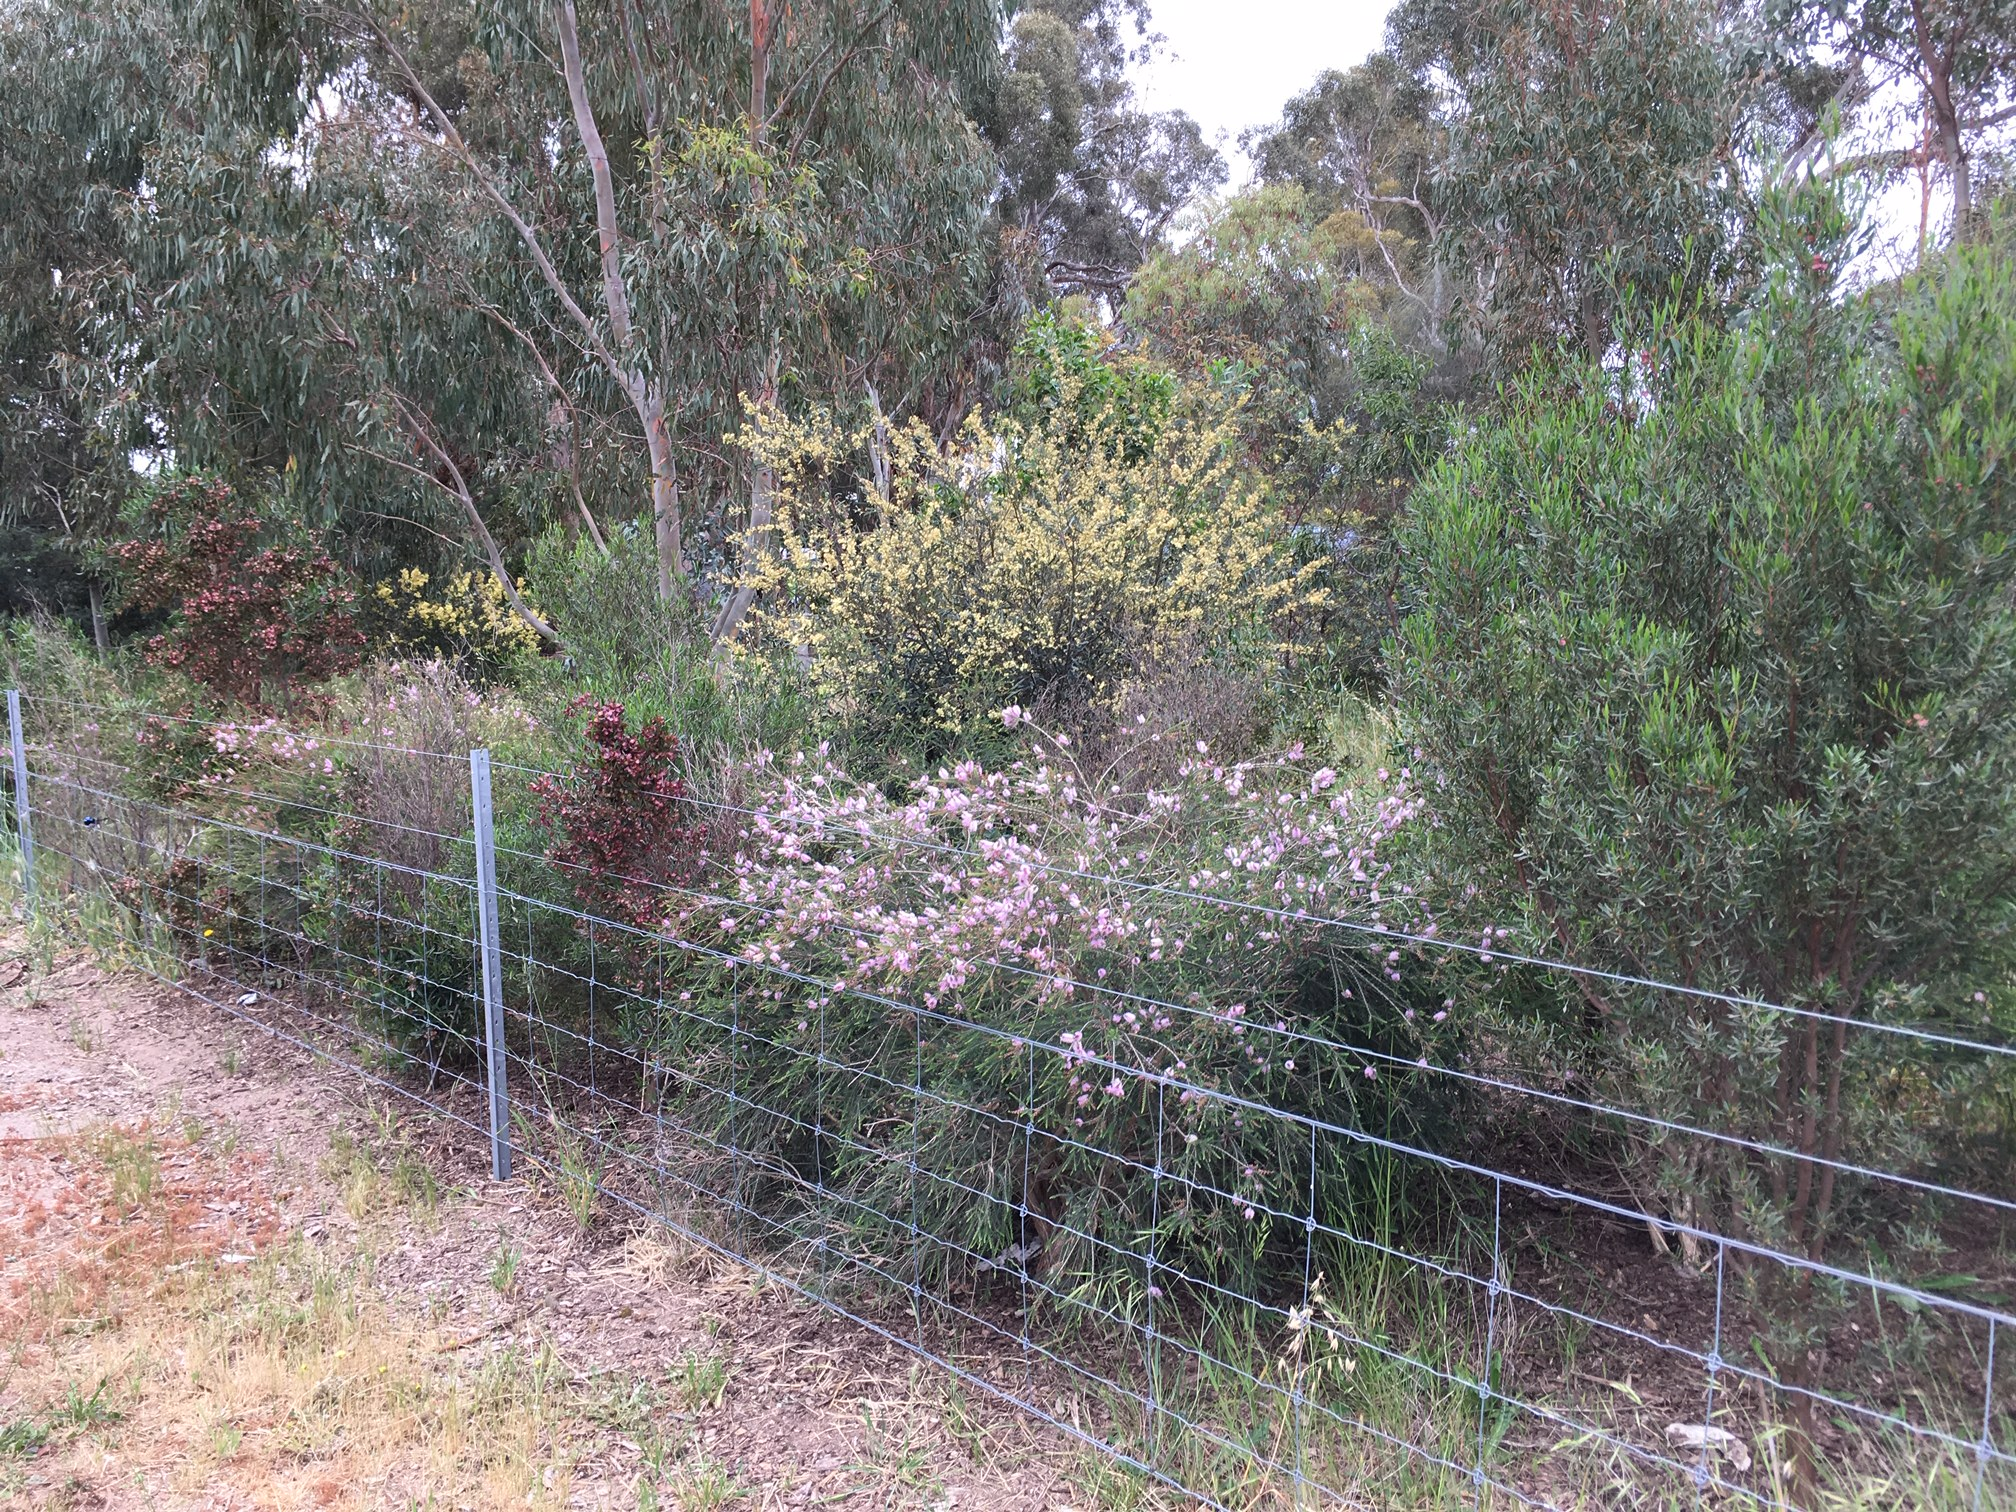 fenced off areas for revegetation